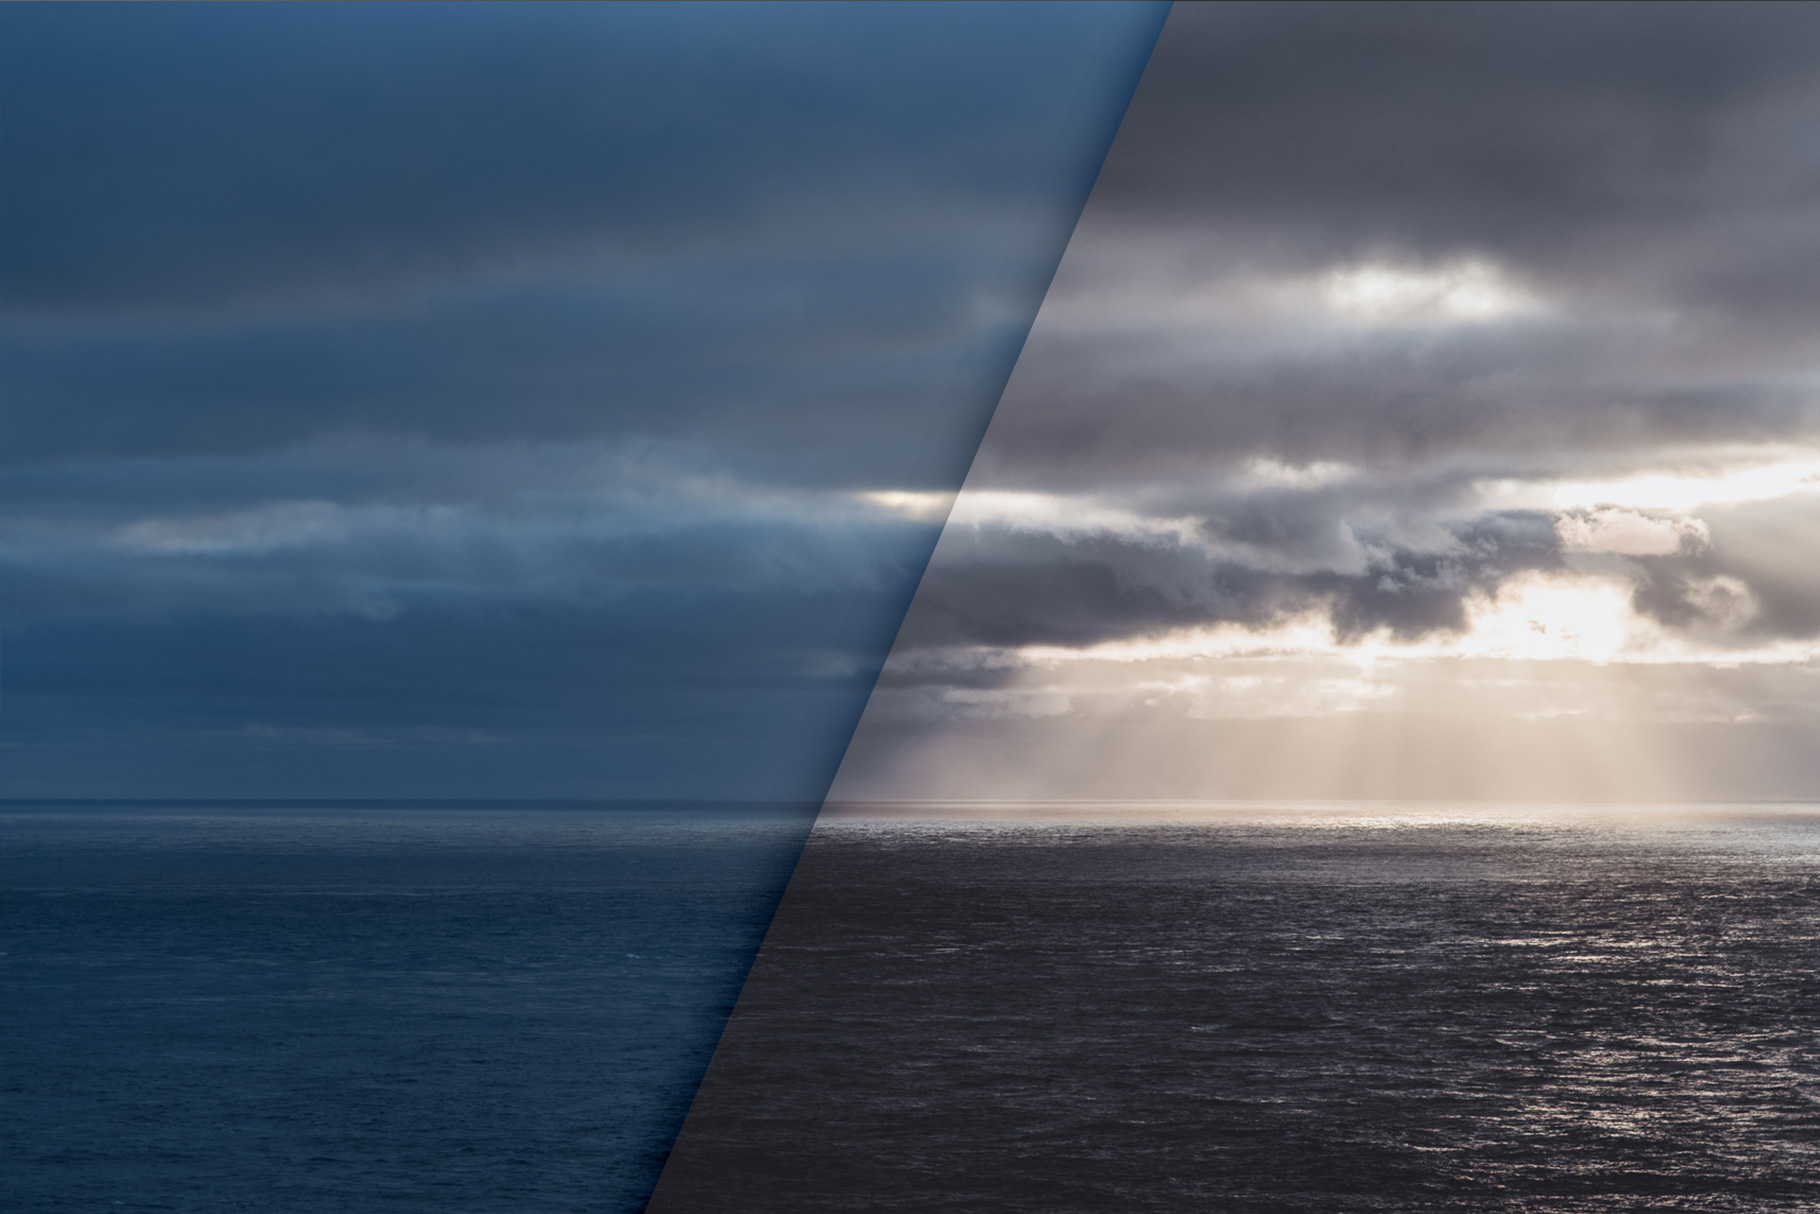 Lightroom Presets for Dark and Moody Landscapes example image 10